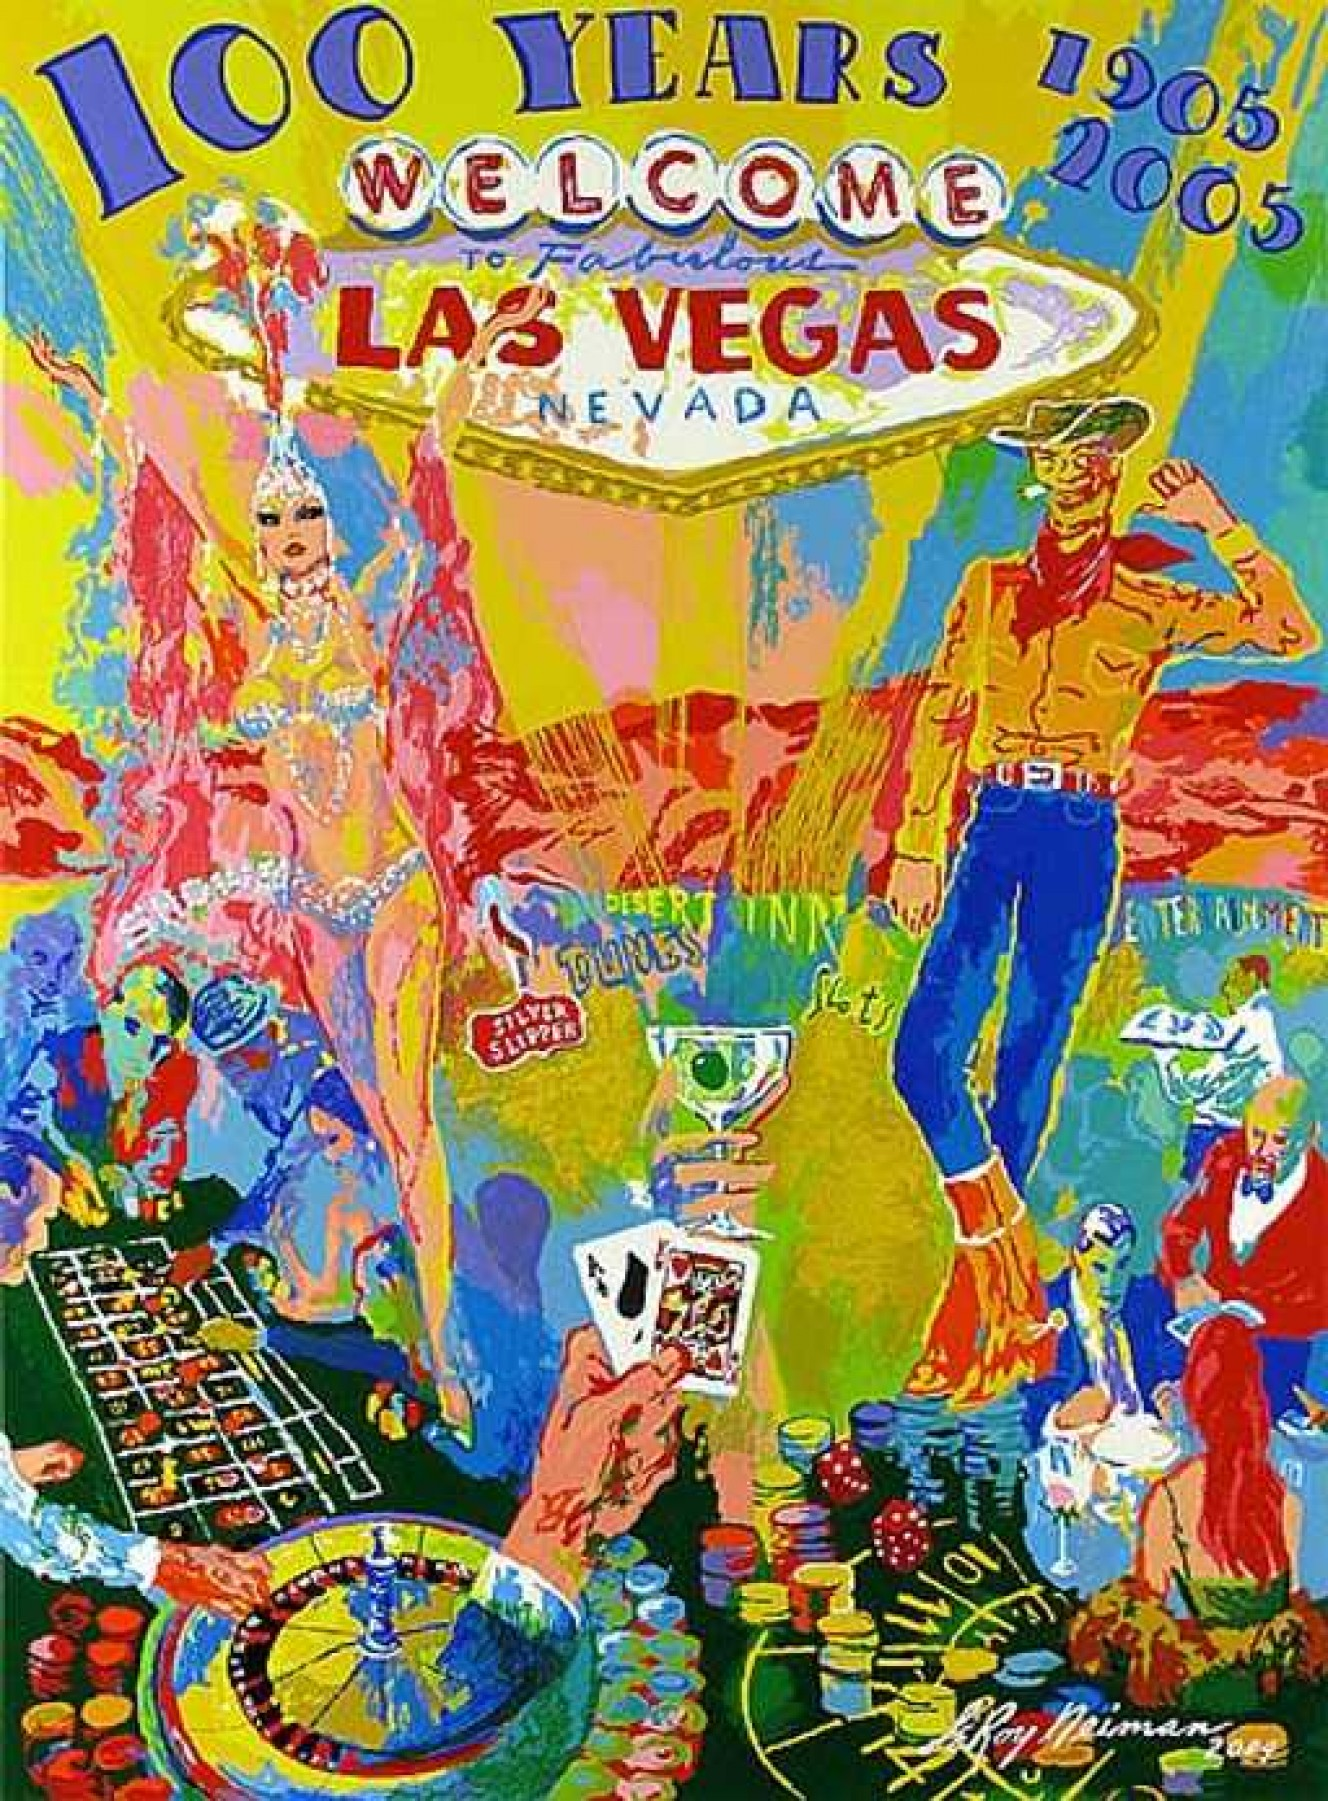 Celebrating 100 Years of Neon (Las Vegas Anniversary) 2005 HS by LeRoy Neiman